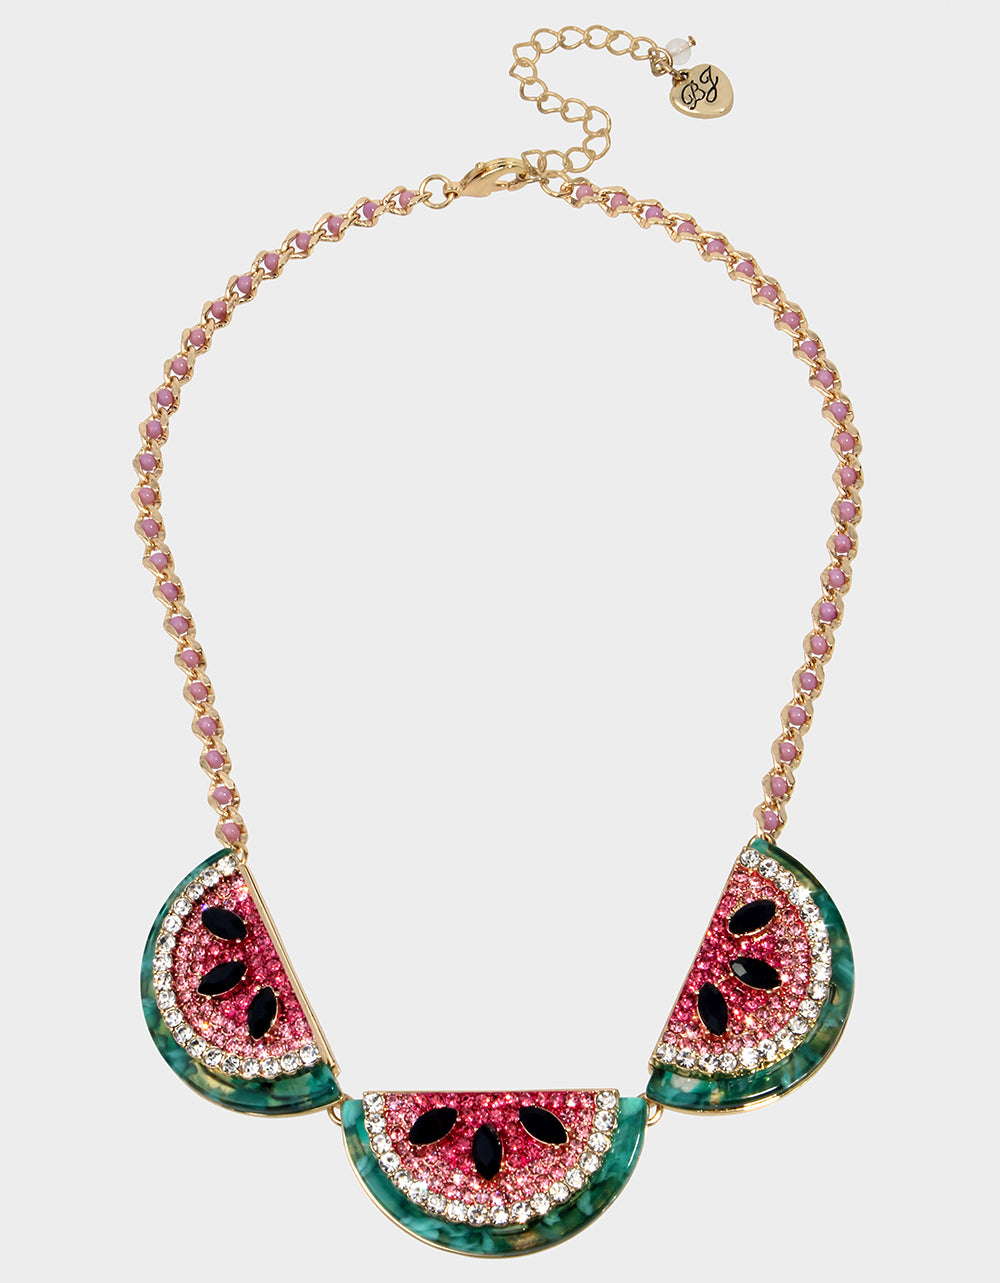 STAY WILD WATERMELON NECKLACE PINK - JEWELRY - Betsey Johnson